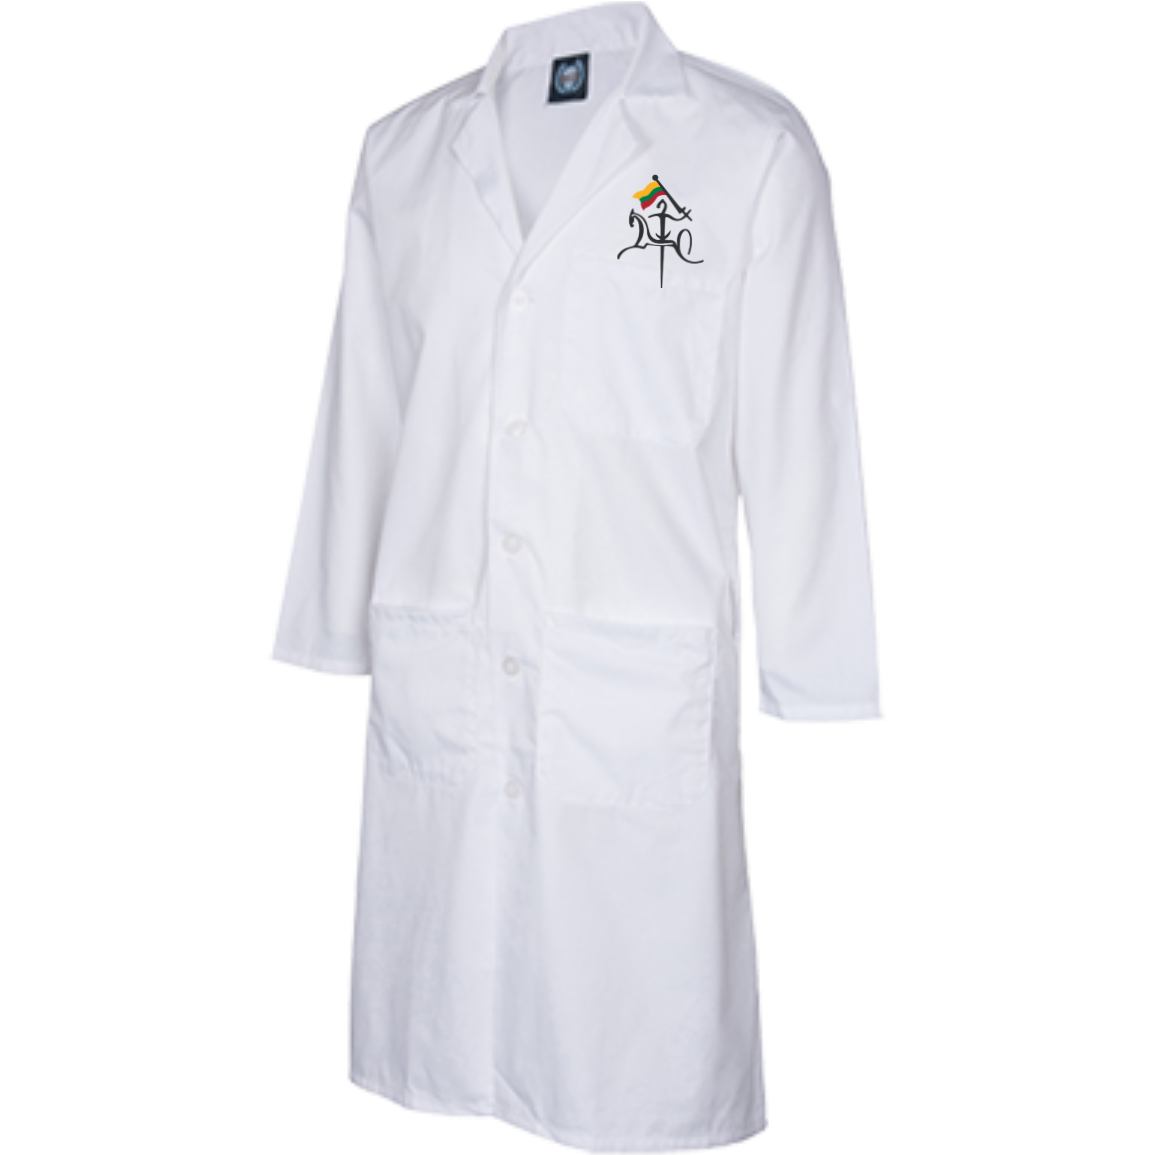 Vytis w/ Flag -- Guys/Gals 43 Inch Long Lab Coat